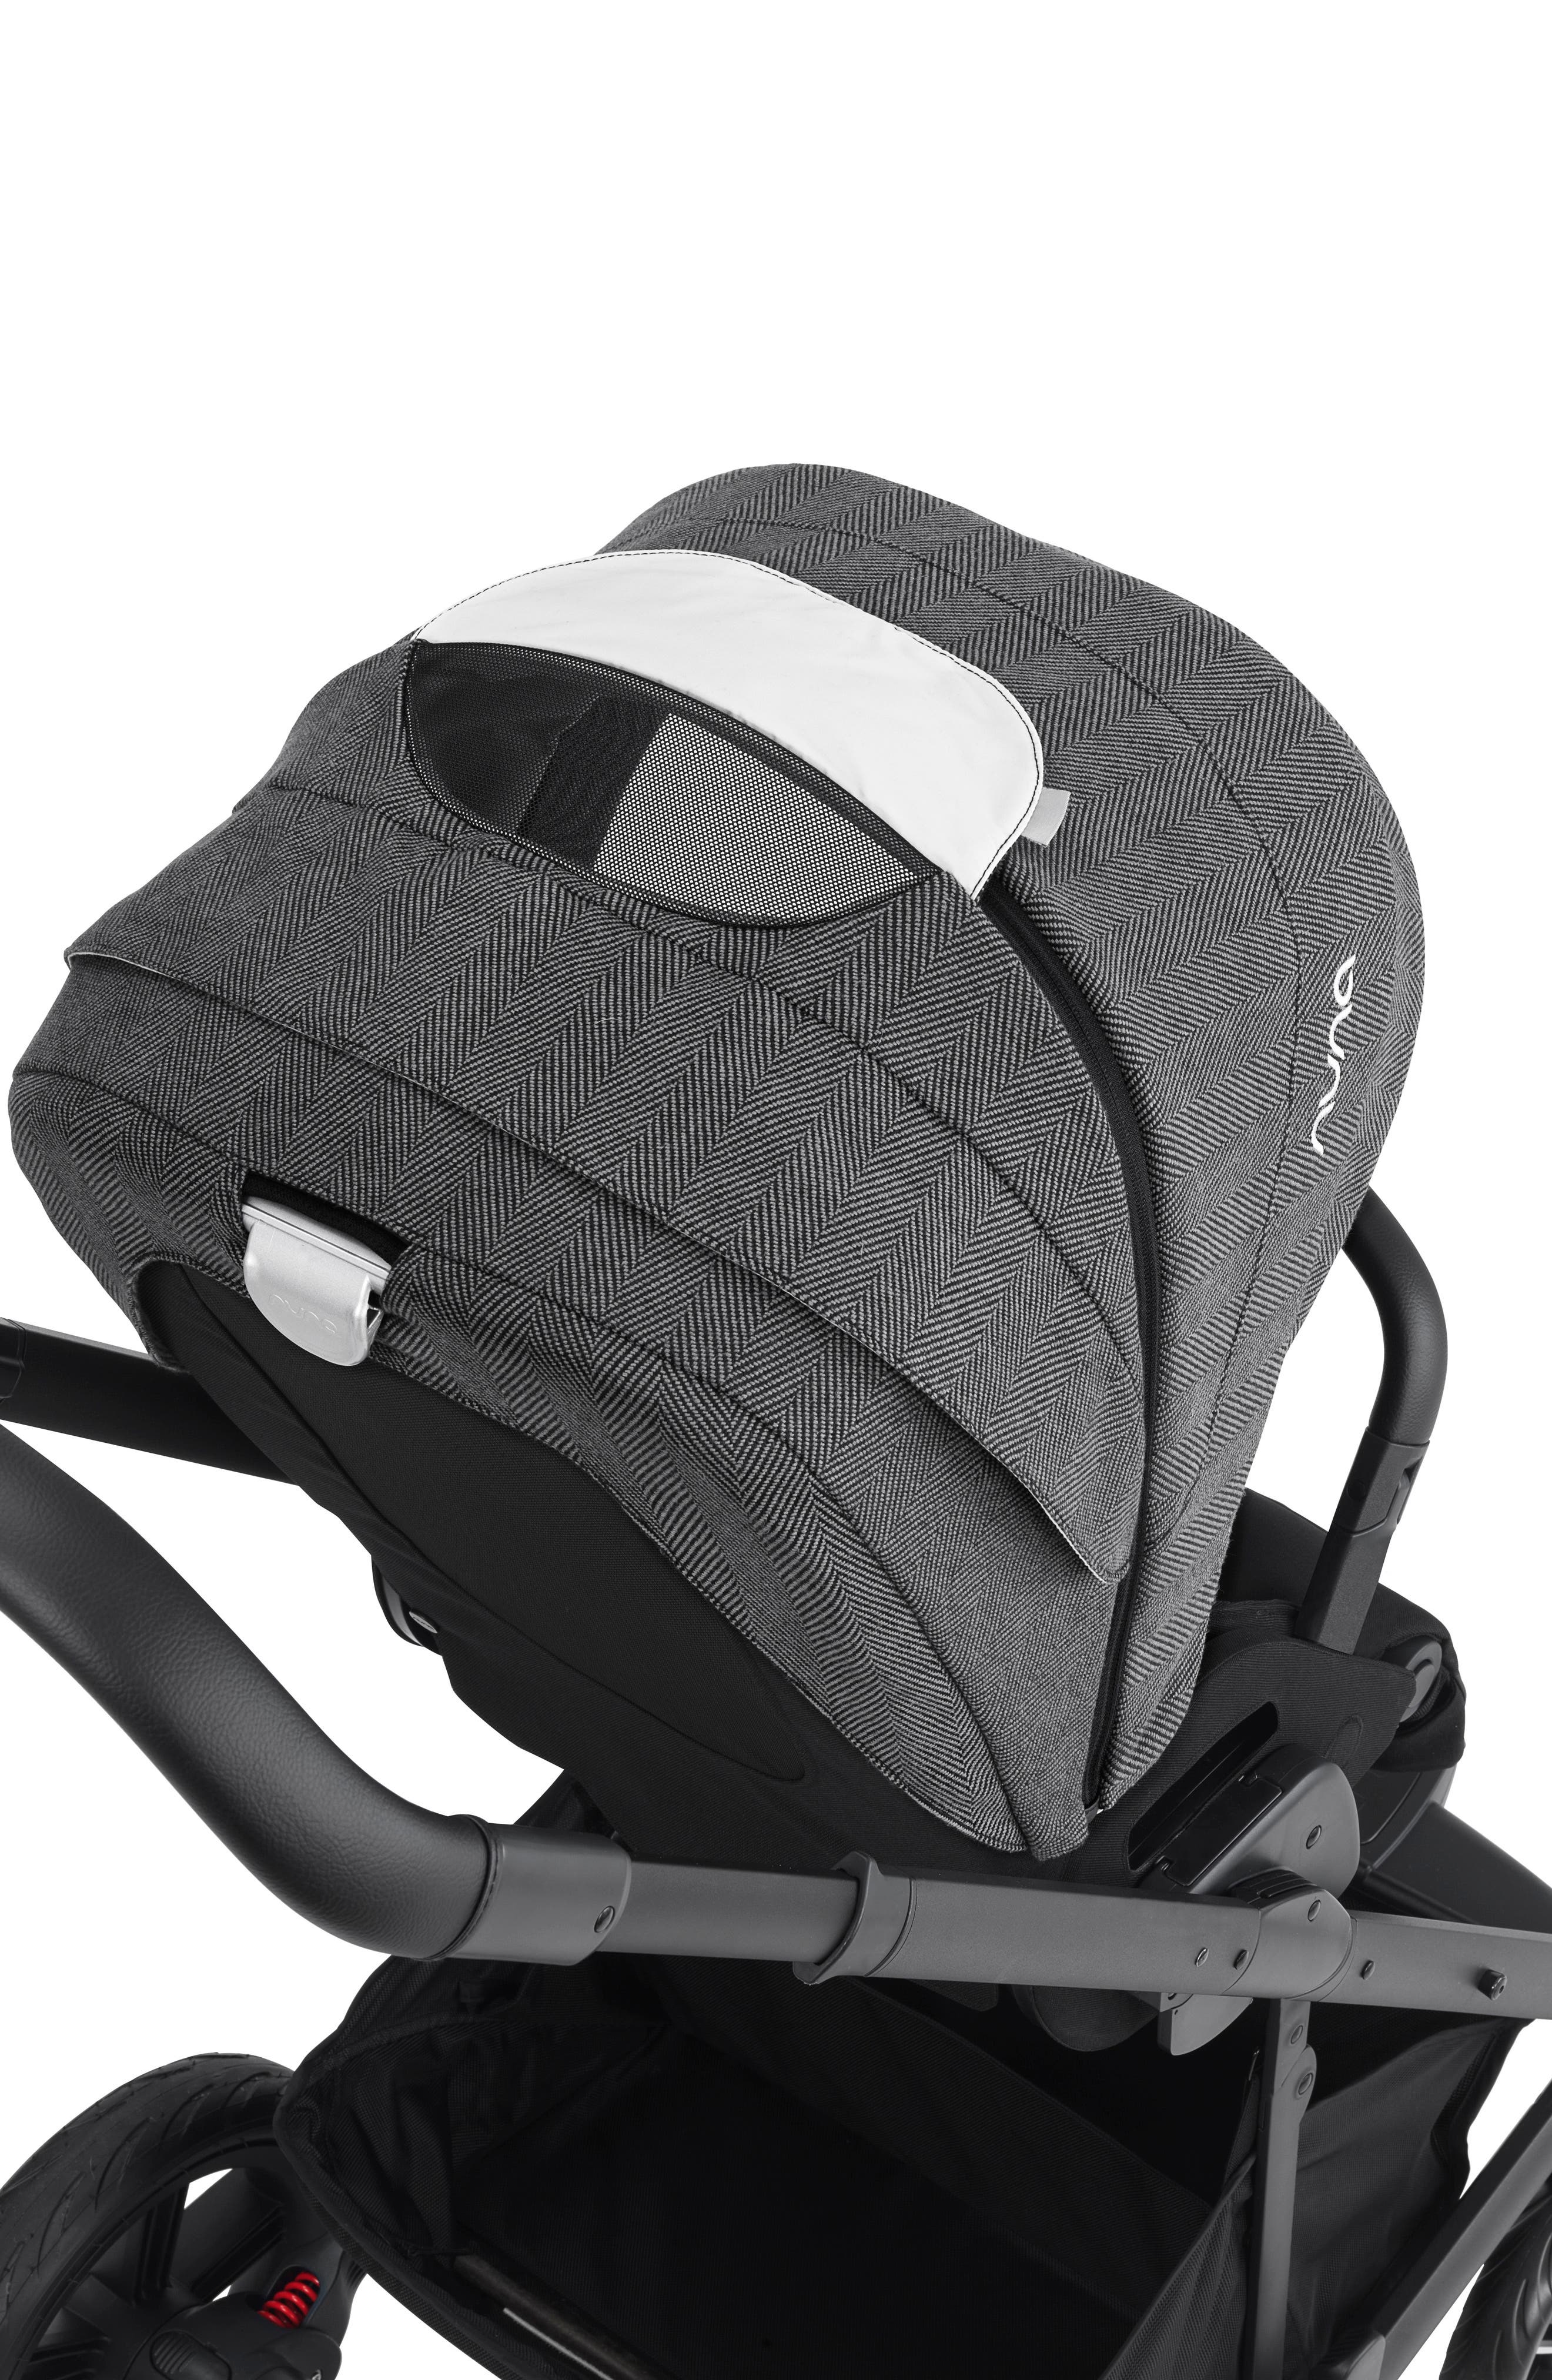 2019 MIXX<sup>™</sup> Stroller & PIPA<sup>™</sup> Lite LX Infant Car Seat Set Travel System,                             Alternate thumbnail 7, color,                             VERONA CAVIAR